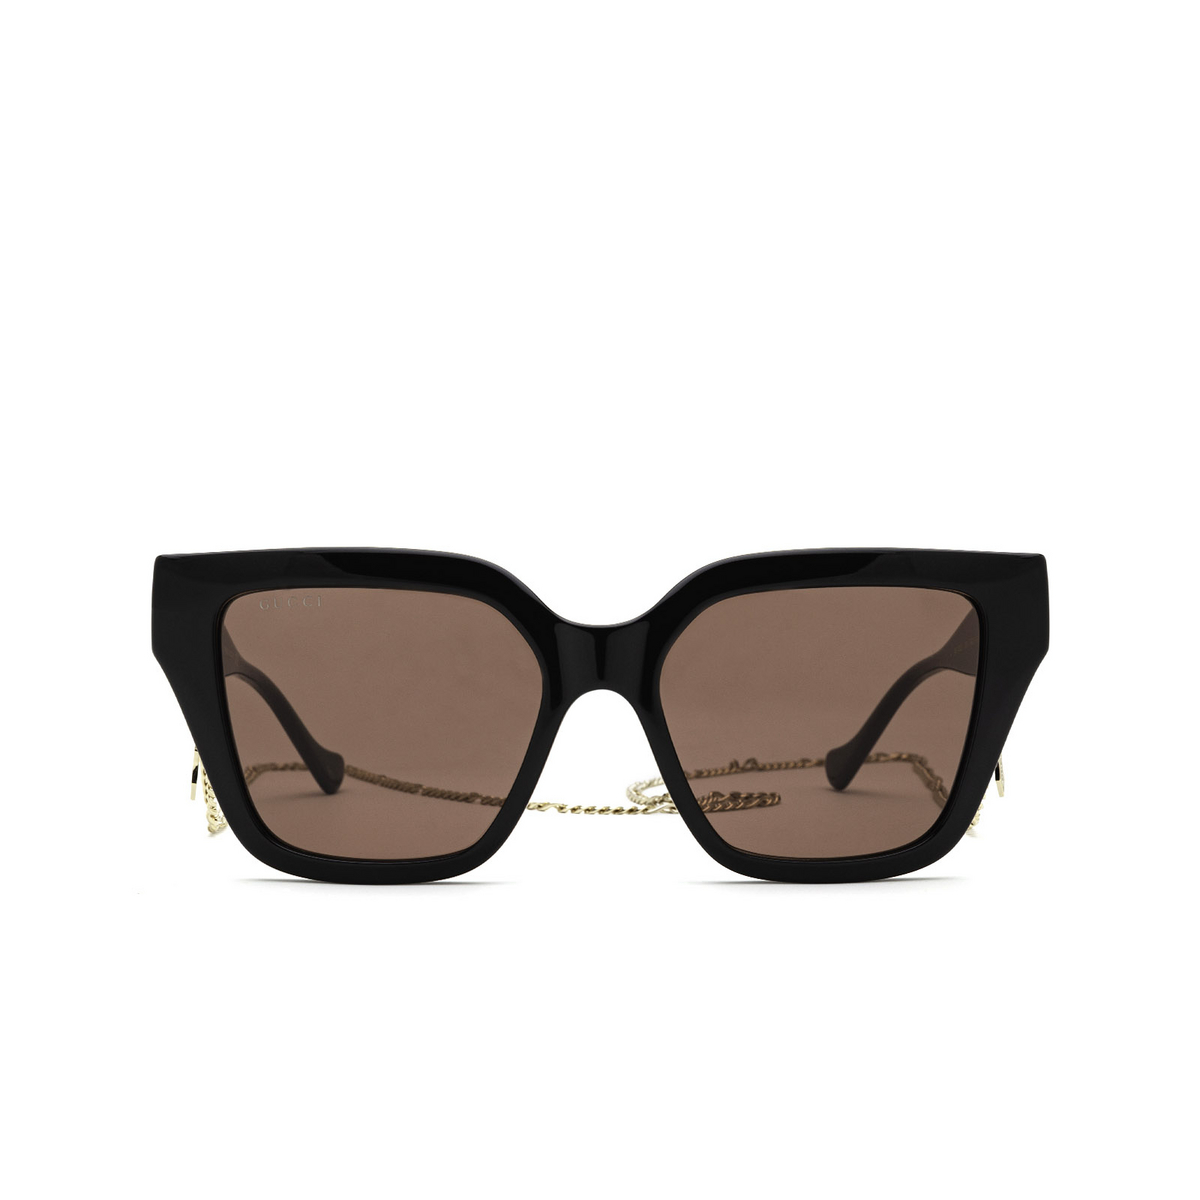 Gucci® Cat-eye Sunglasses: GG1023S color Black 005 - front view.